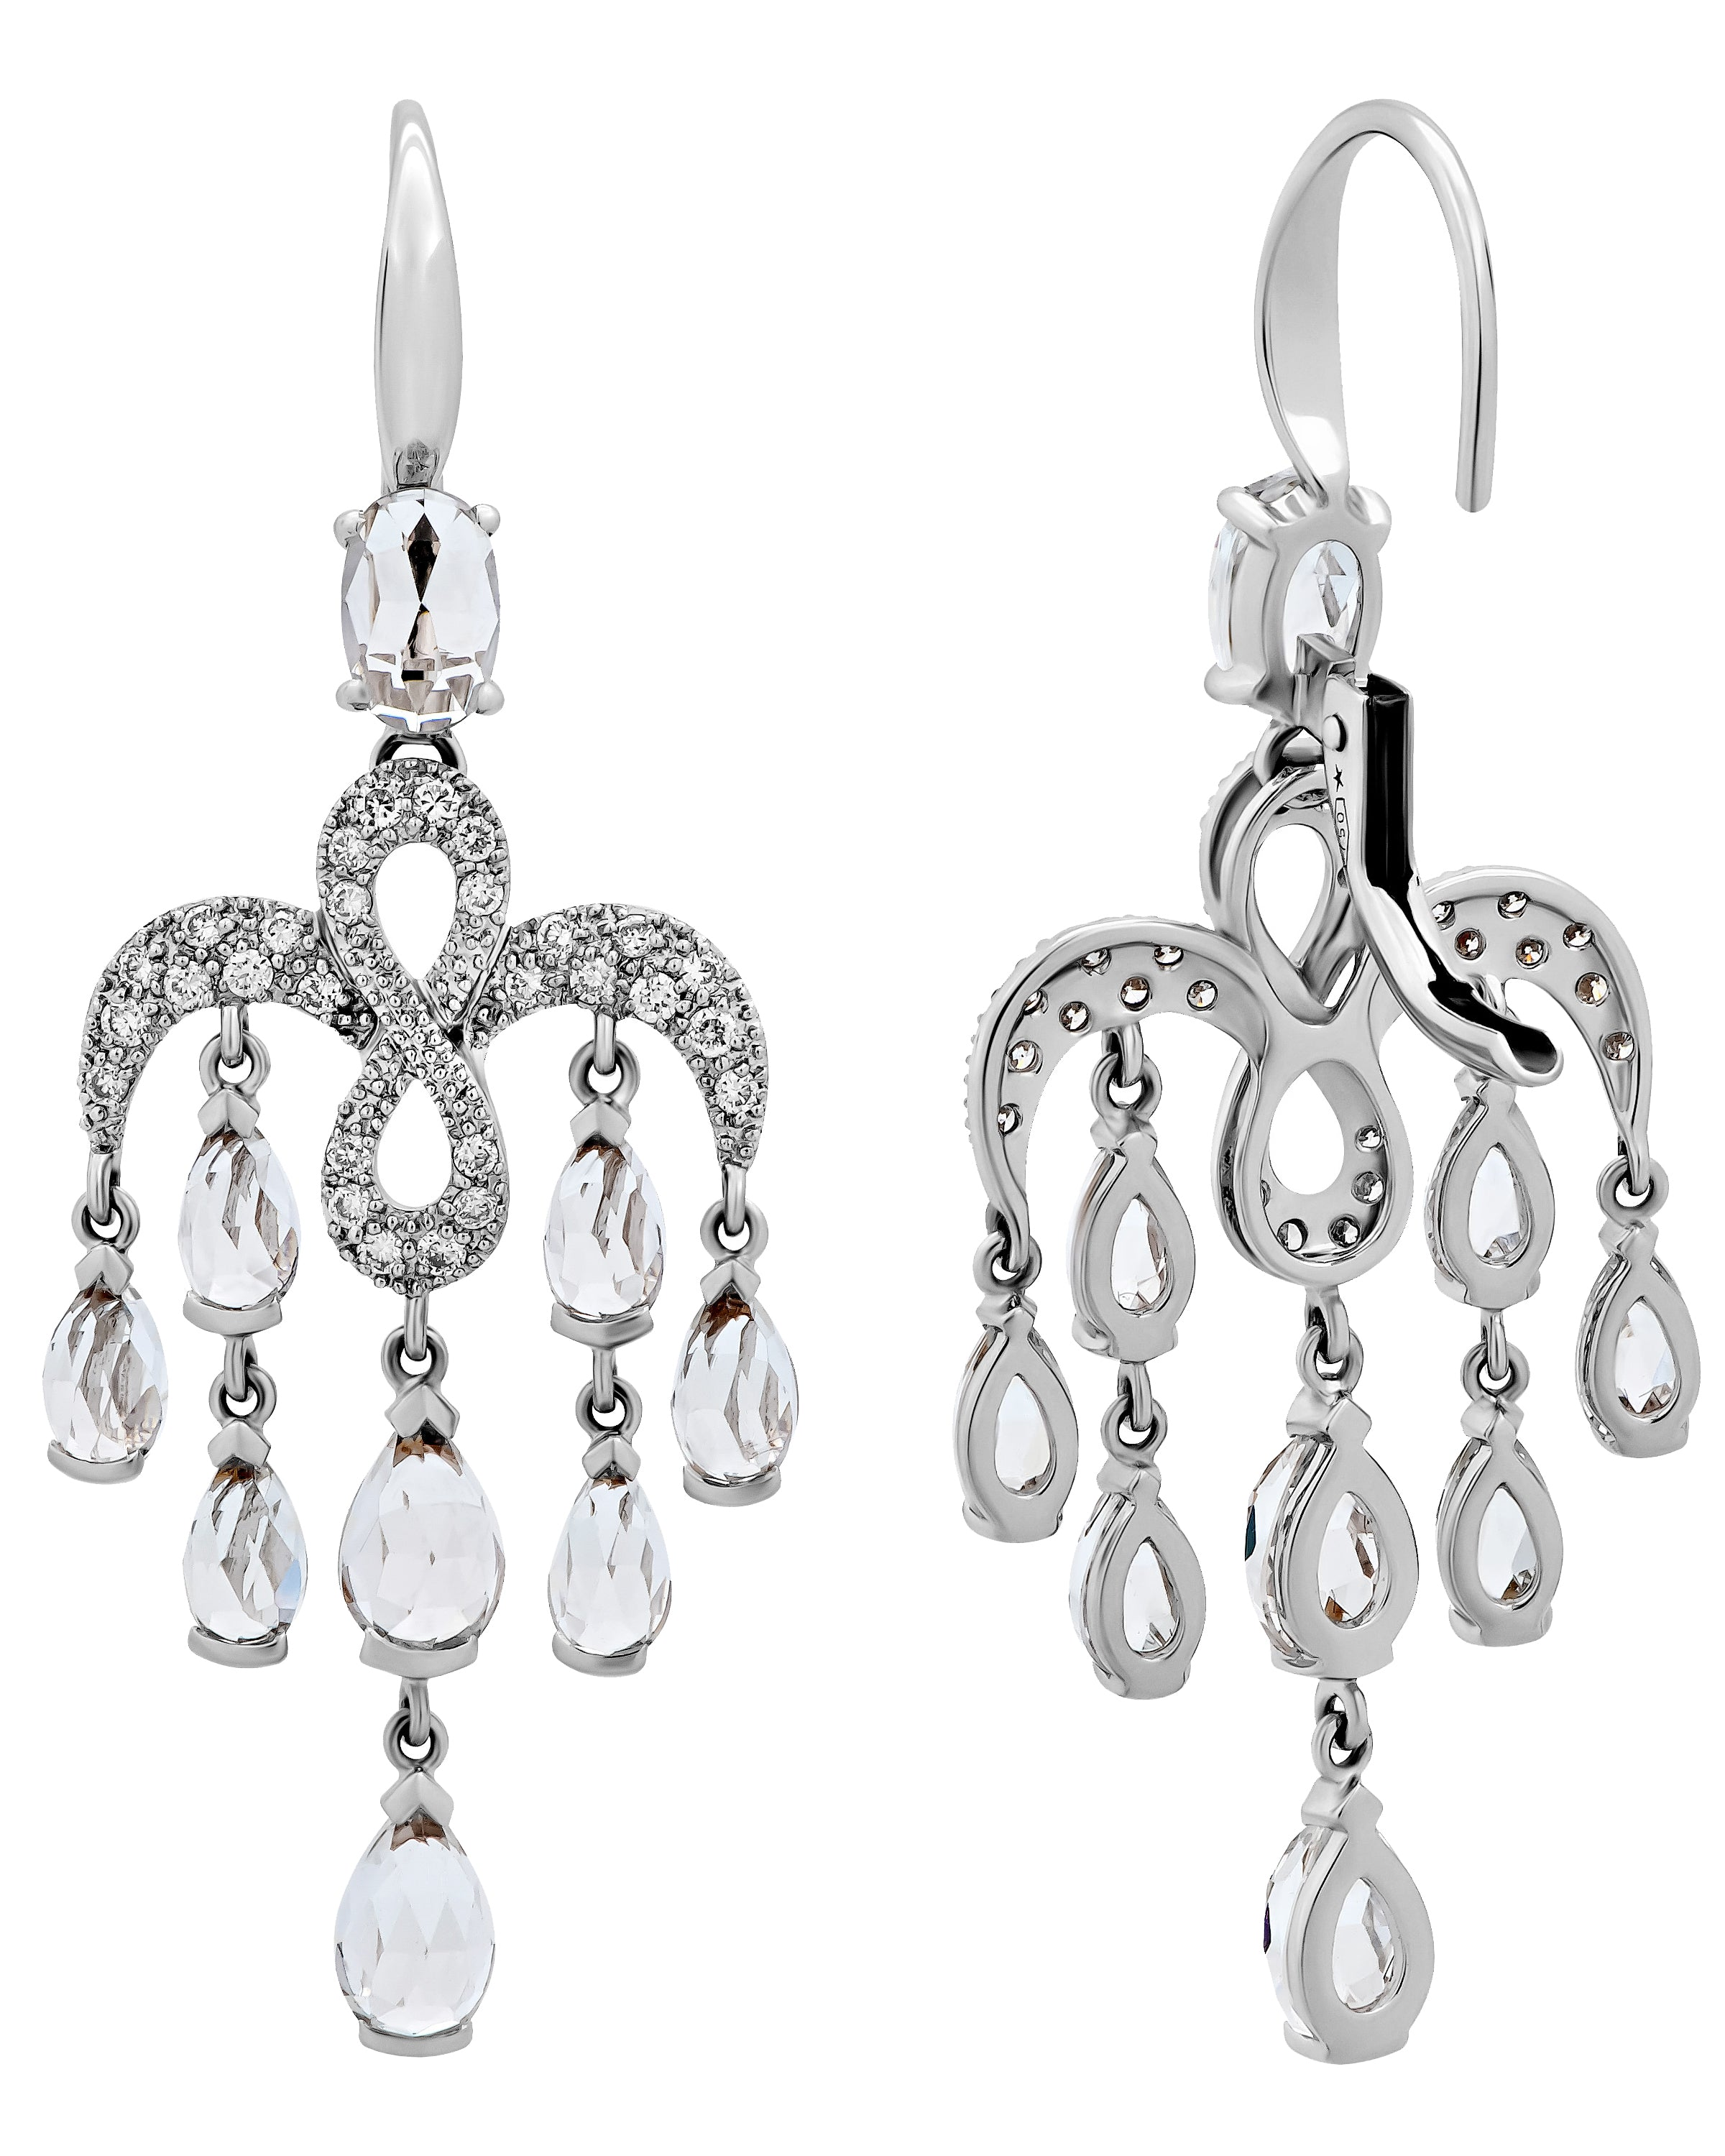 Mimi Milano 18K White Gold, Diamonds And White Topaz Earrings O383B8T1B